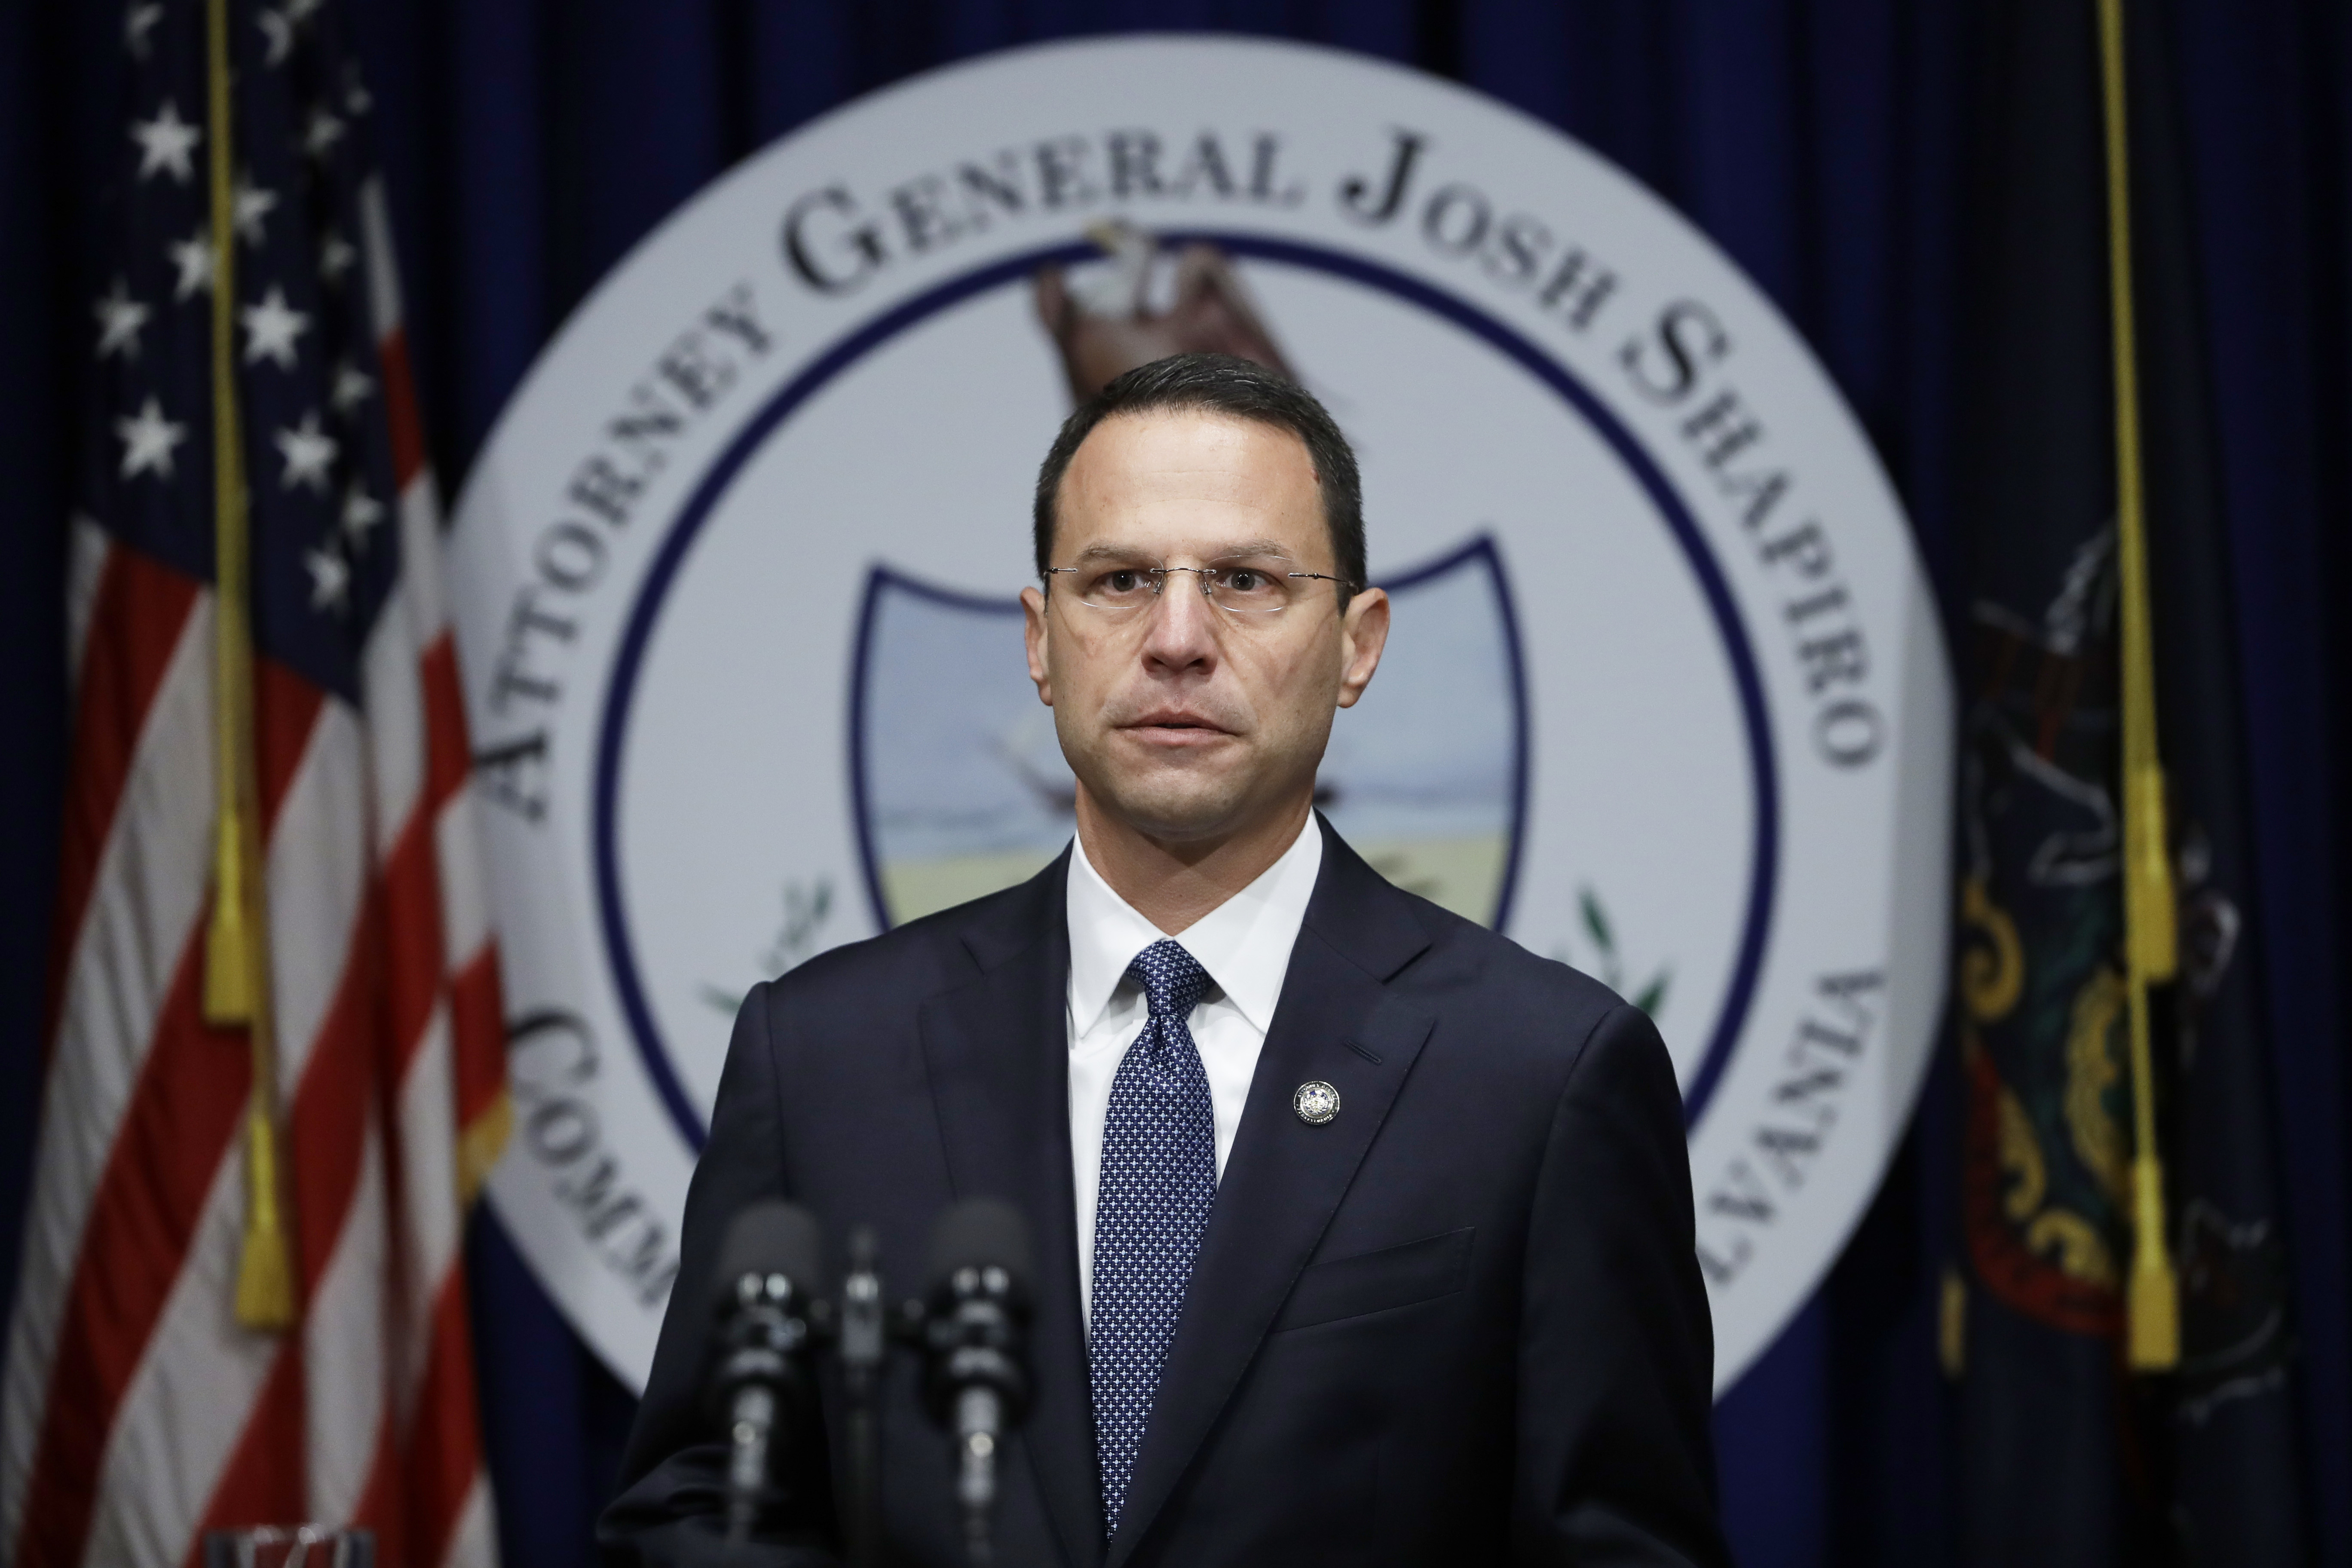 An attorney for some clergy members seeking to block the release of a grand jury report accused Attorney General Josh Shapiro, pictured above, of running a relentless media campaign. They also accused his office of releasing secret grand jury material.